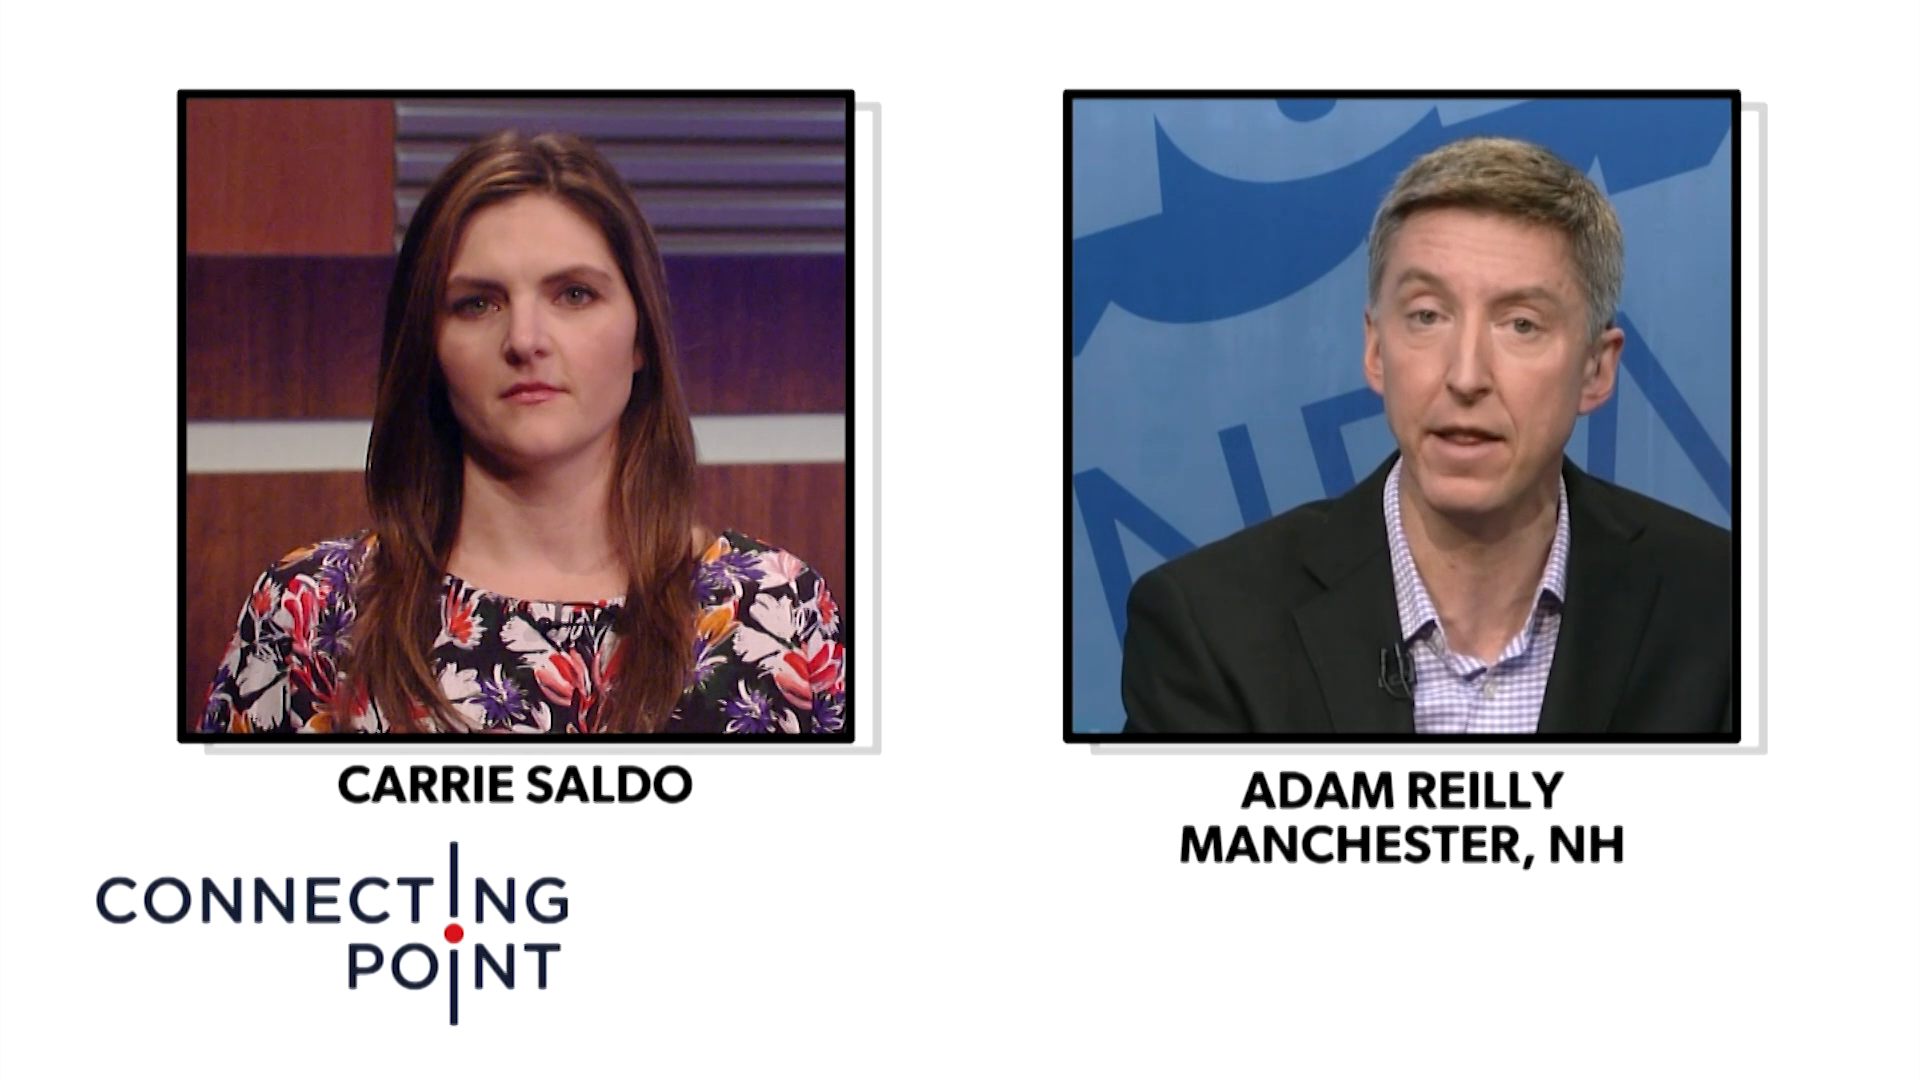 On the ground in New Hampshire, Adam Reilly checks in for an update on how things stand as voters cast their ballots in the New Hampshire Primary.